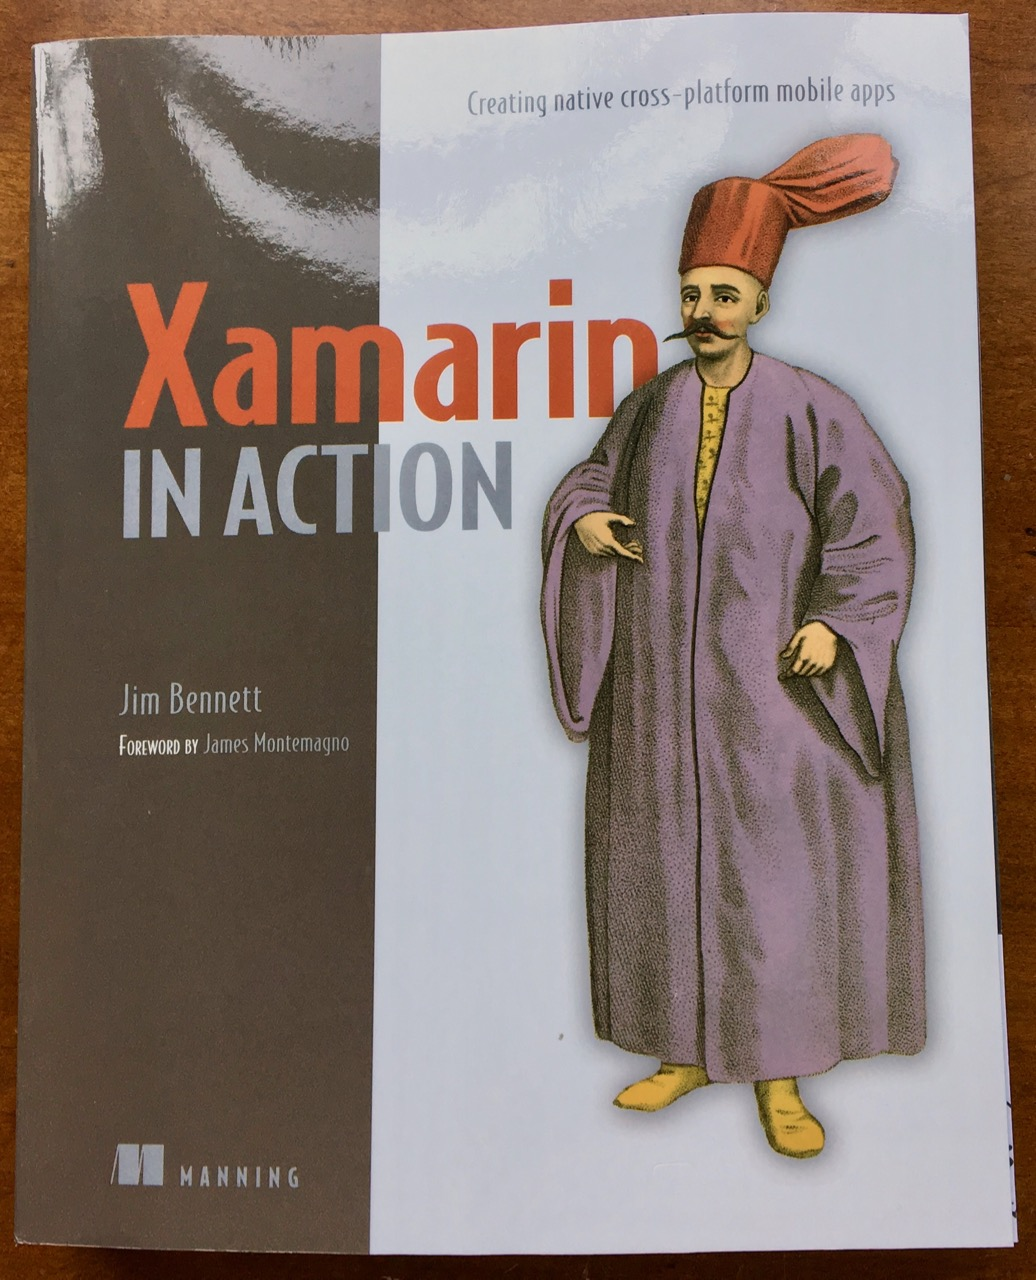 Xamarin in Action book cover